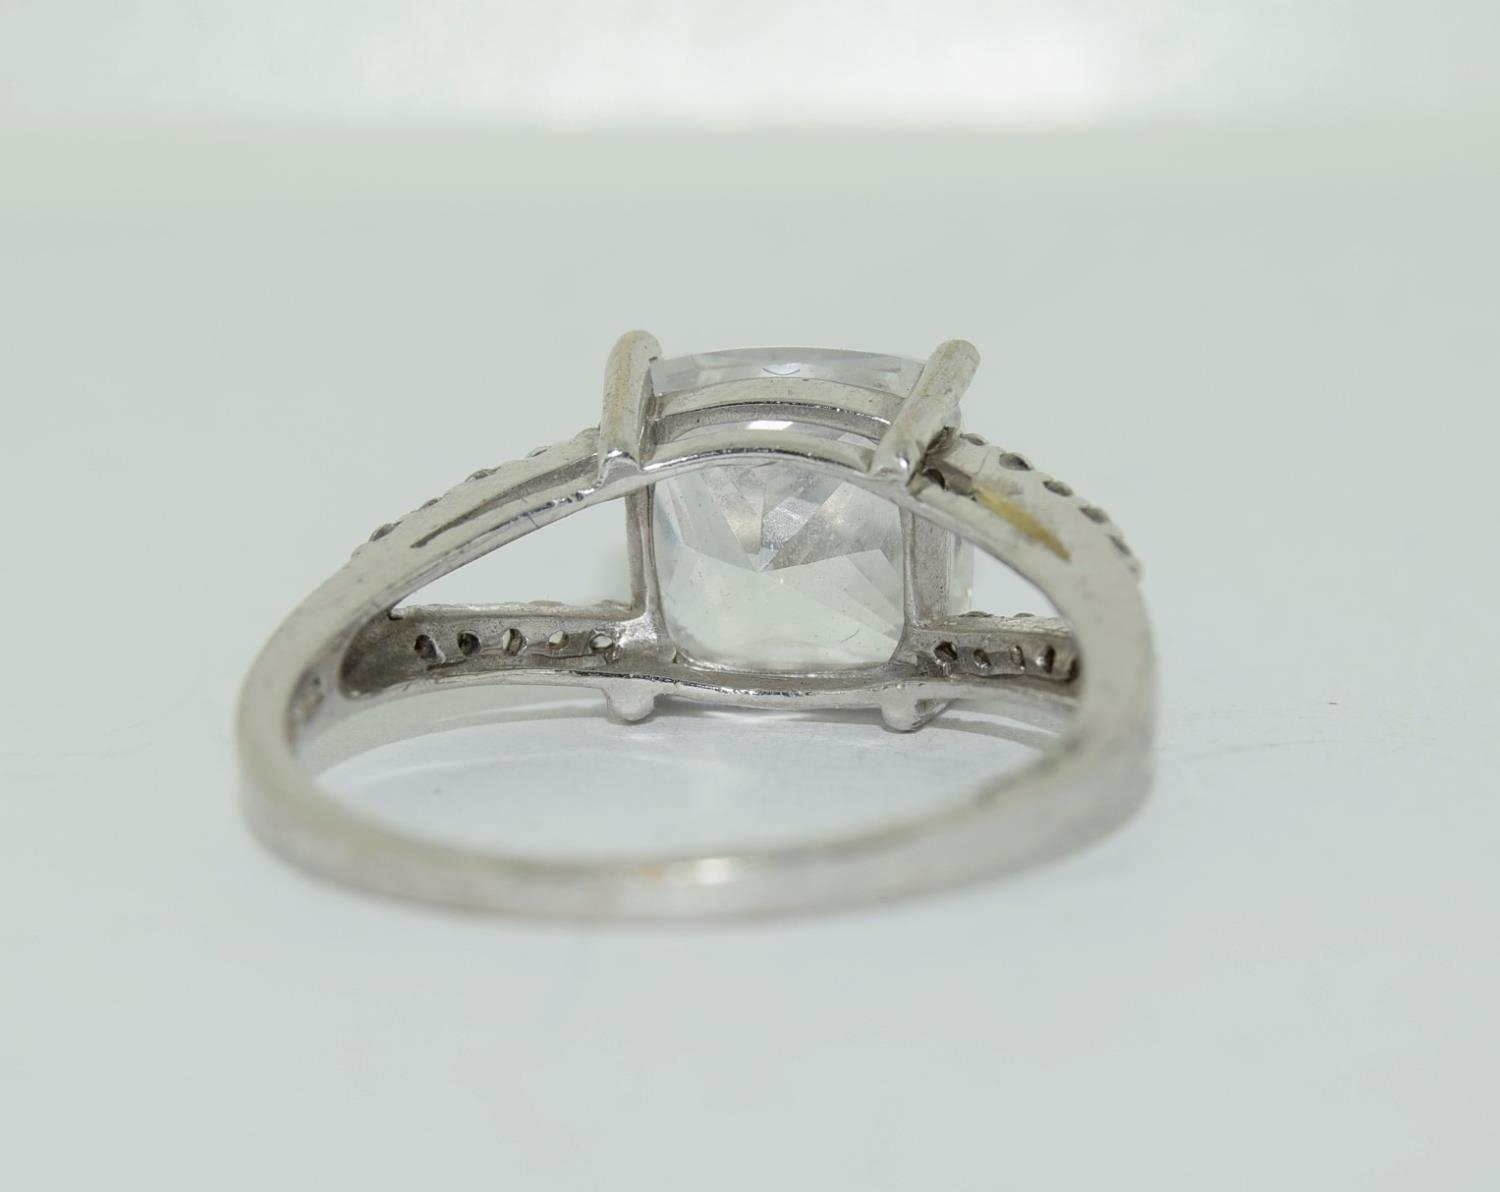 9ct white gold ladies square set solitare ring size R - Image 6 of 12